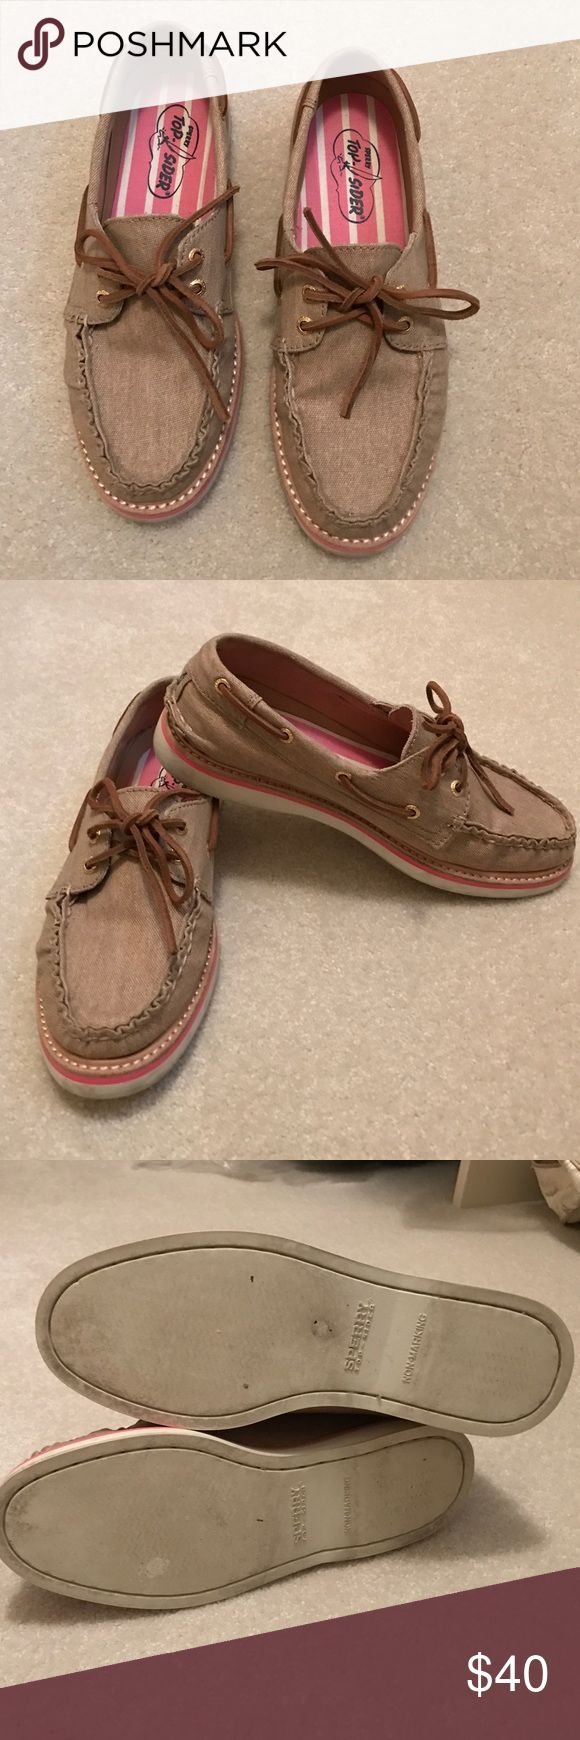 Sperry Top Sider canvas shoe Barely worn Sperry Top Sider shoes. Sperry Top-Sider Shoes Flats & Loafers